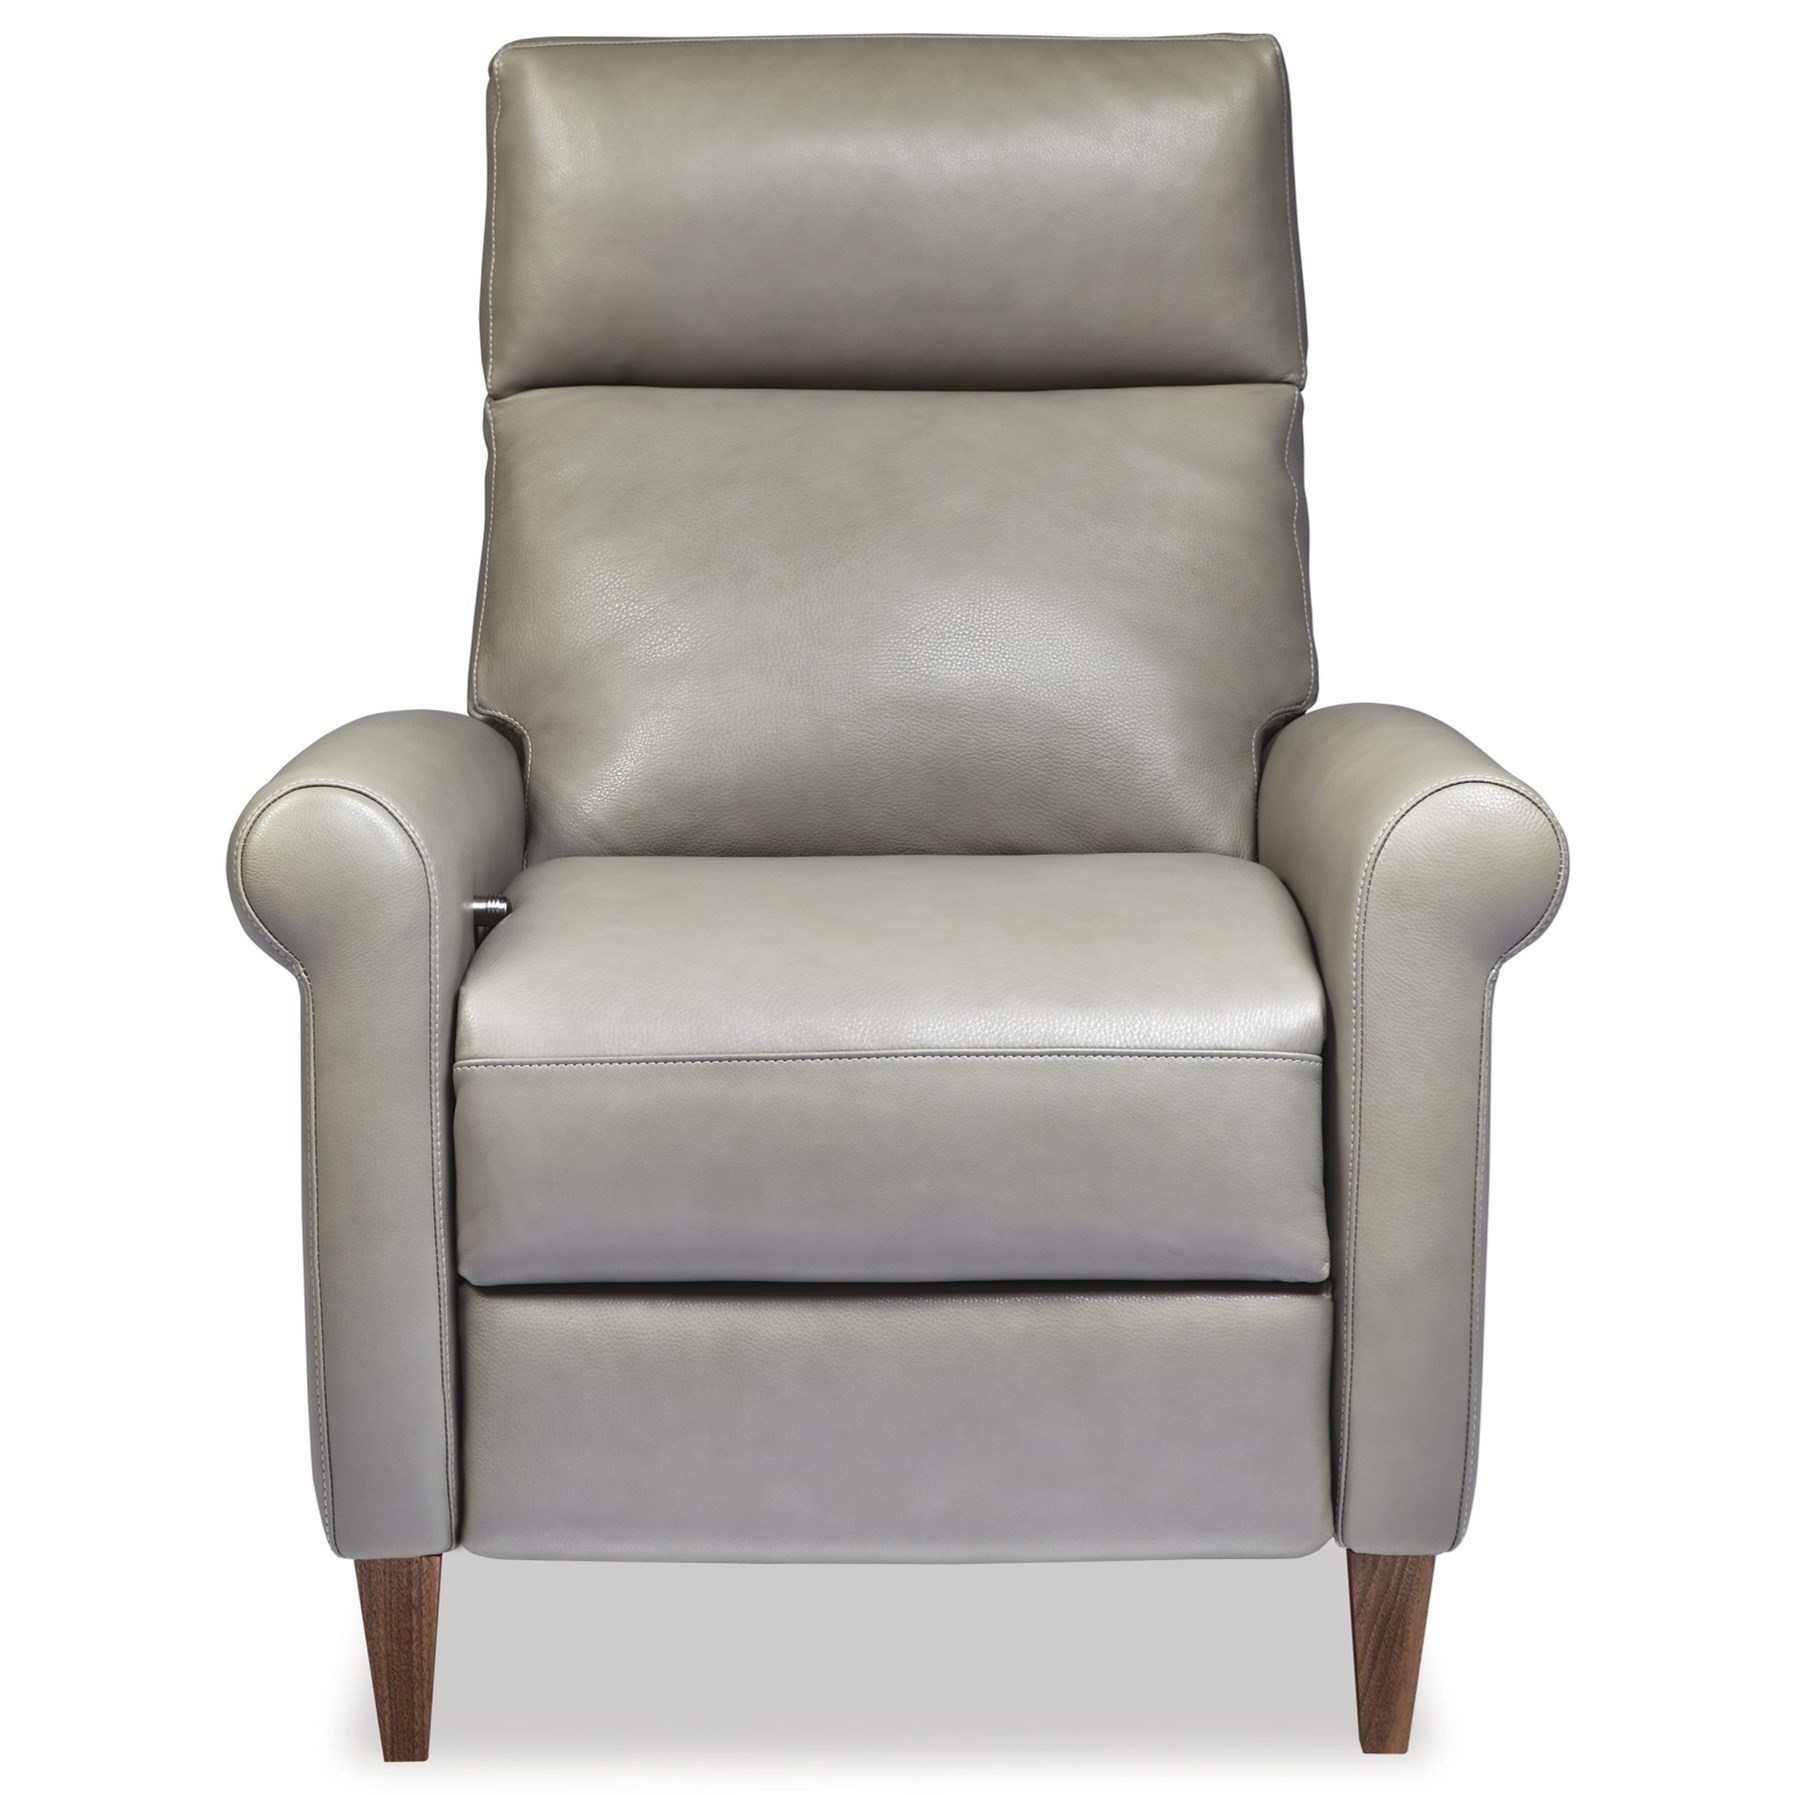 Adley Comfort Recliner by American Leather at Williams & Kay